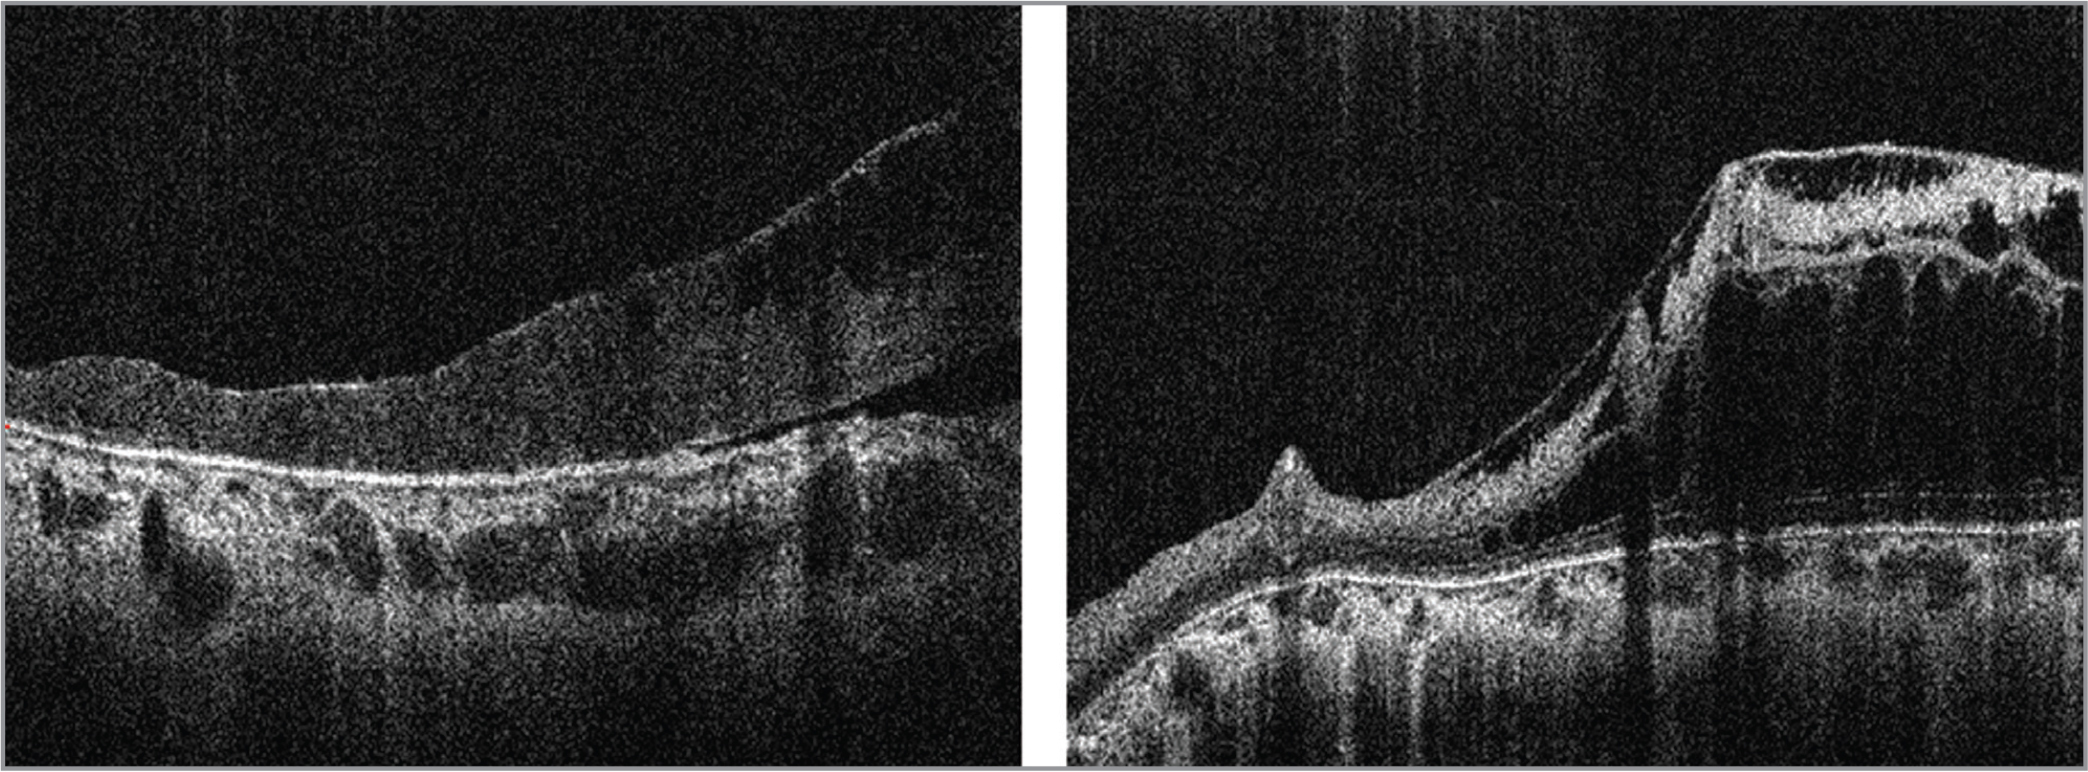 Optical coherence tomography images of retinoschisis. (Left) Right eye (OD) of Patient K3 with retinal detachment and retinoschisis overlying dilated choroidal vessels and pachychoroid. (Right) OD of Patient K4 with abnormal epiretinal membranes, and retinoschisis. (The vitreoretinal traction is not clearly visible in these images).